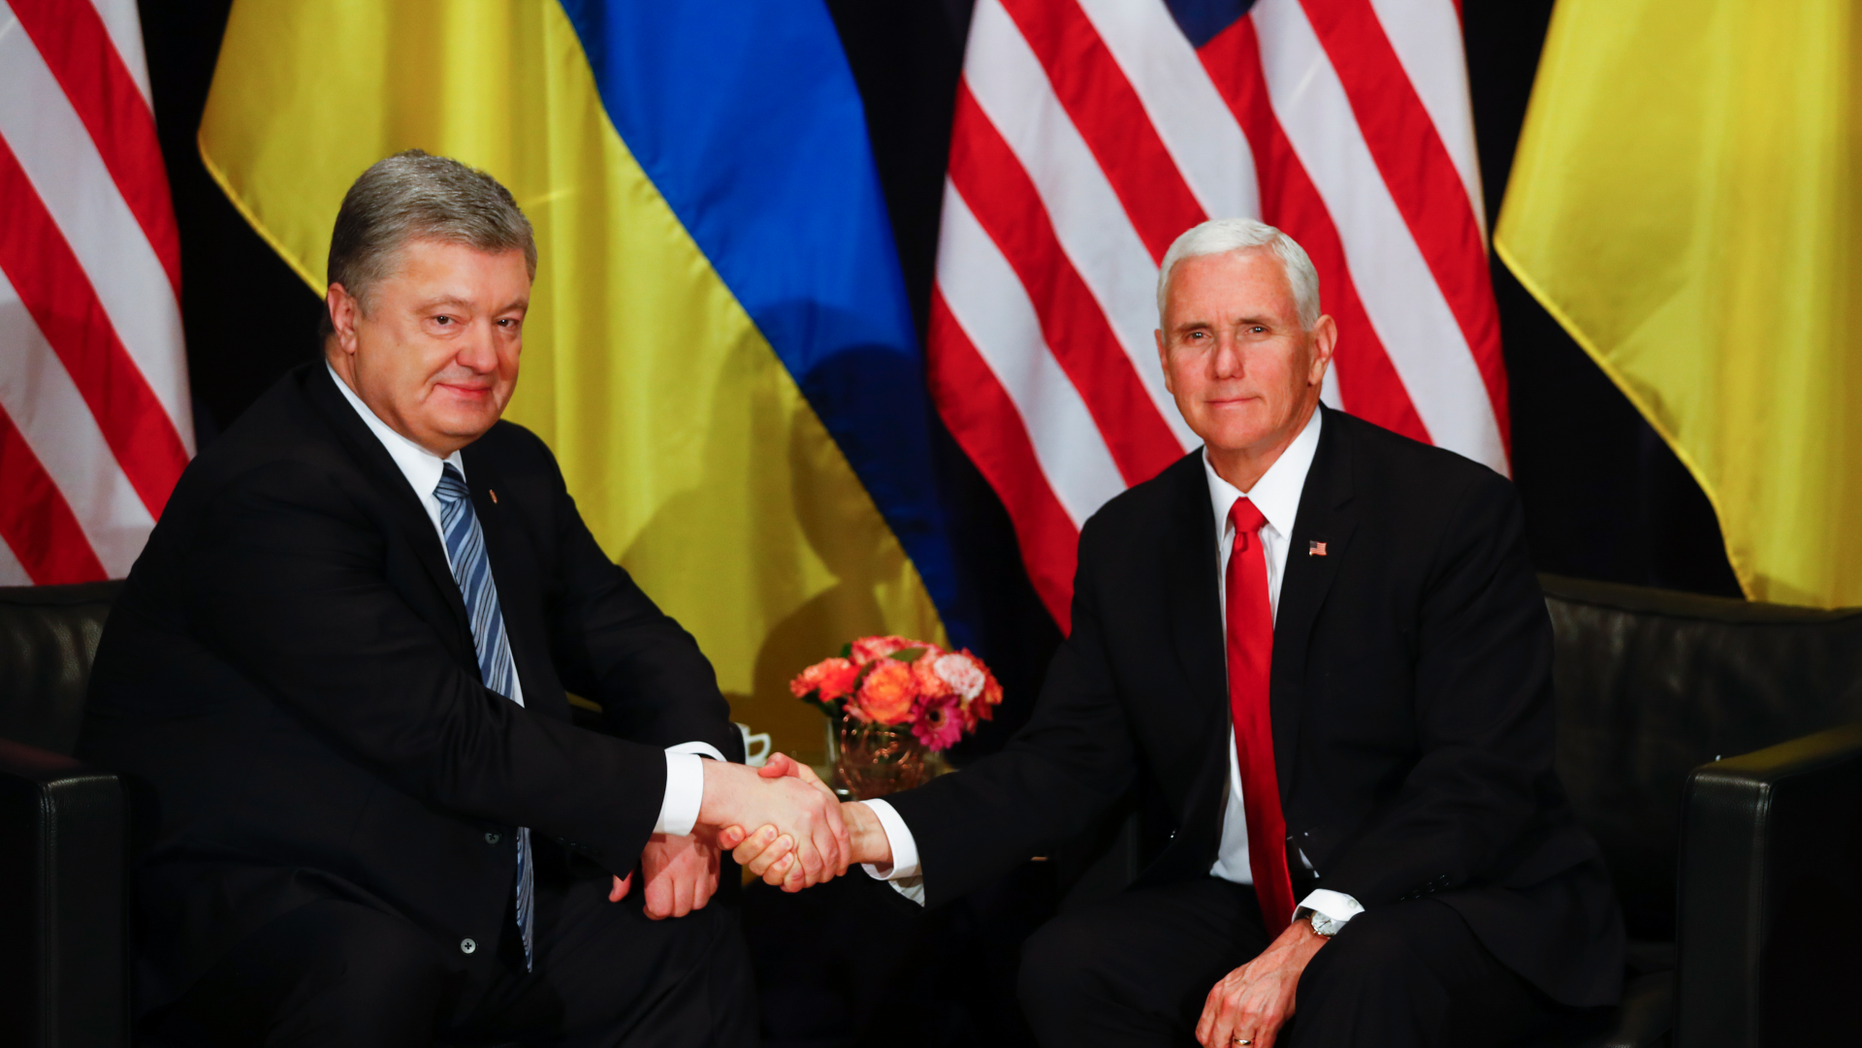 United States Vice President Mike Pence, right, and Ukrainian President Petro Poroshenko, left, shake hands during a bilateral meeting at the Munich Security Conference in Munich, Germany, Saturday, Feb. 16, 2019. (AP Photo/Matthias Schrader)